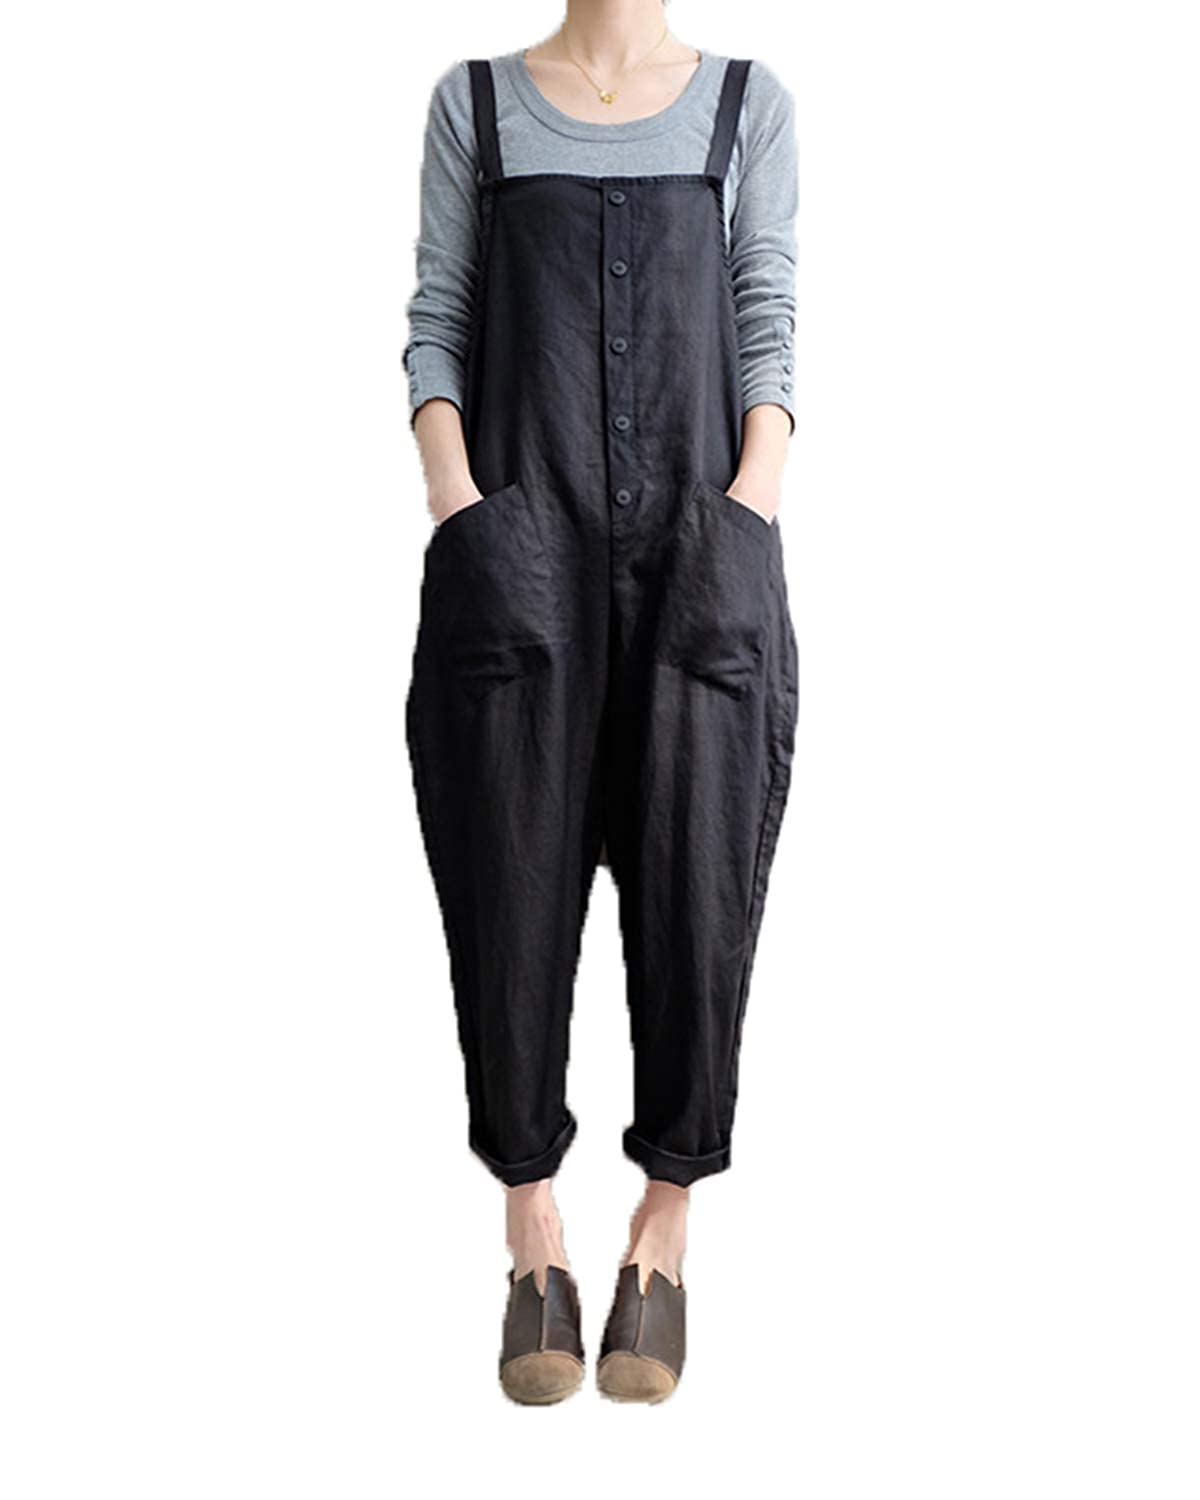 663d93069b Amazon.com  Celmia Women s Strappy Jumpsuits Overalls Casual Harem Pants  Wide Leg Low Crotch Loose Trousers  Clothing